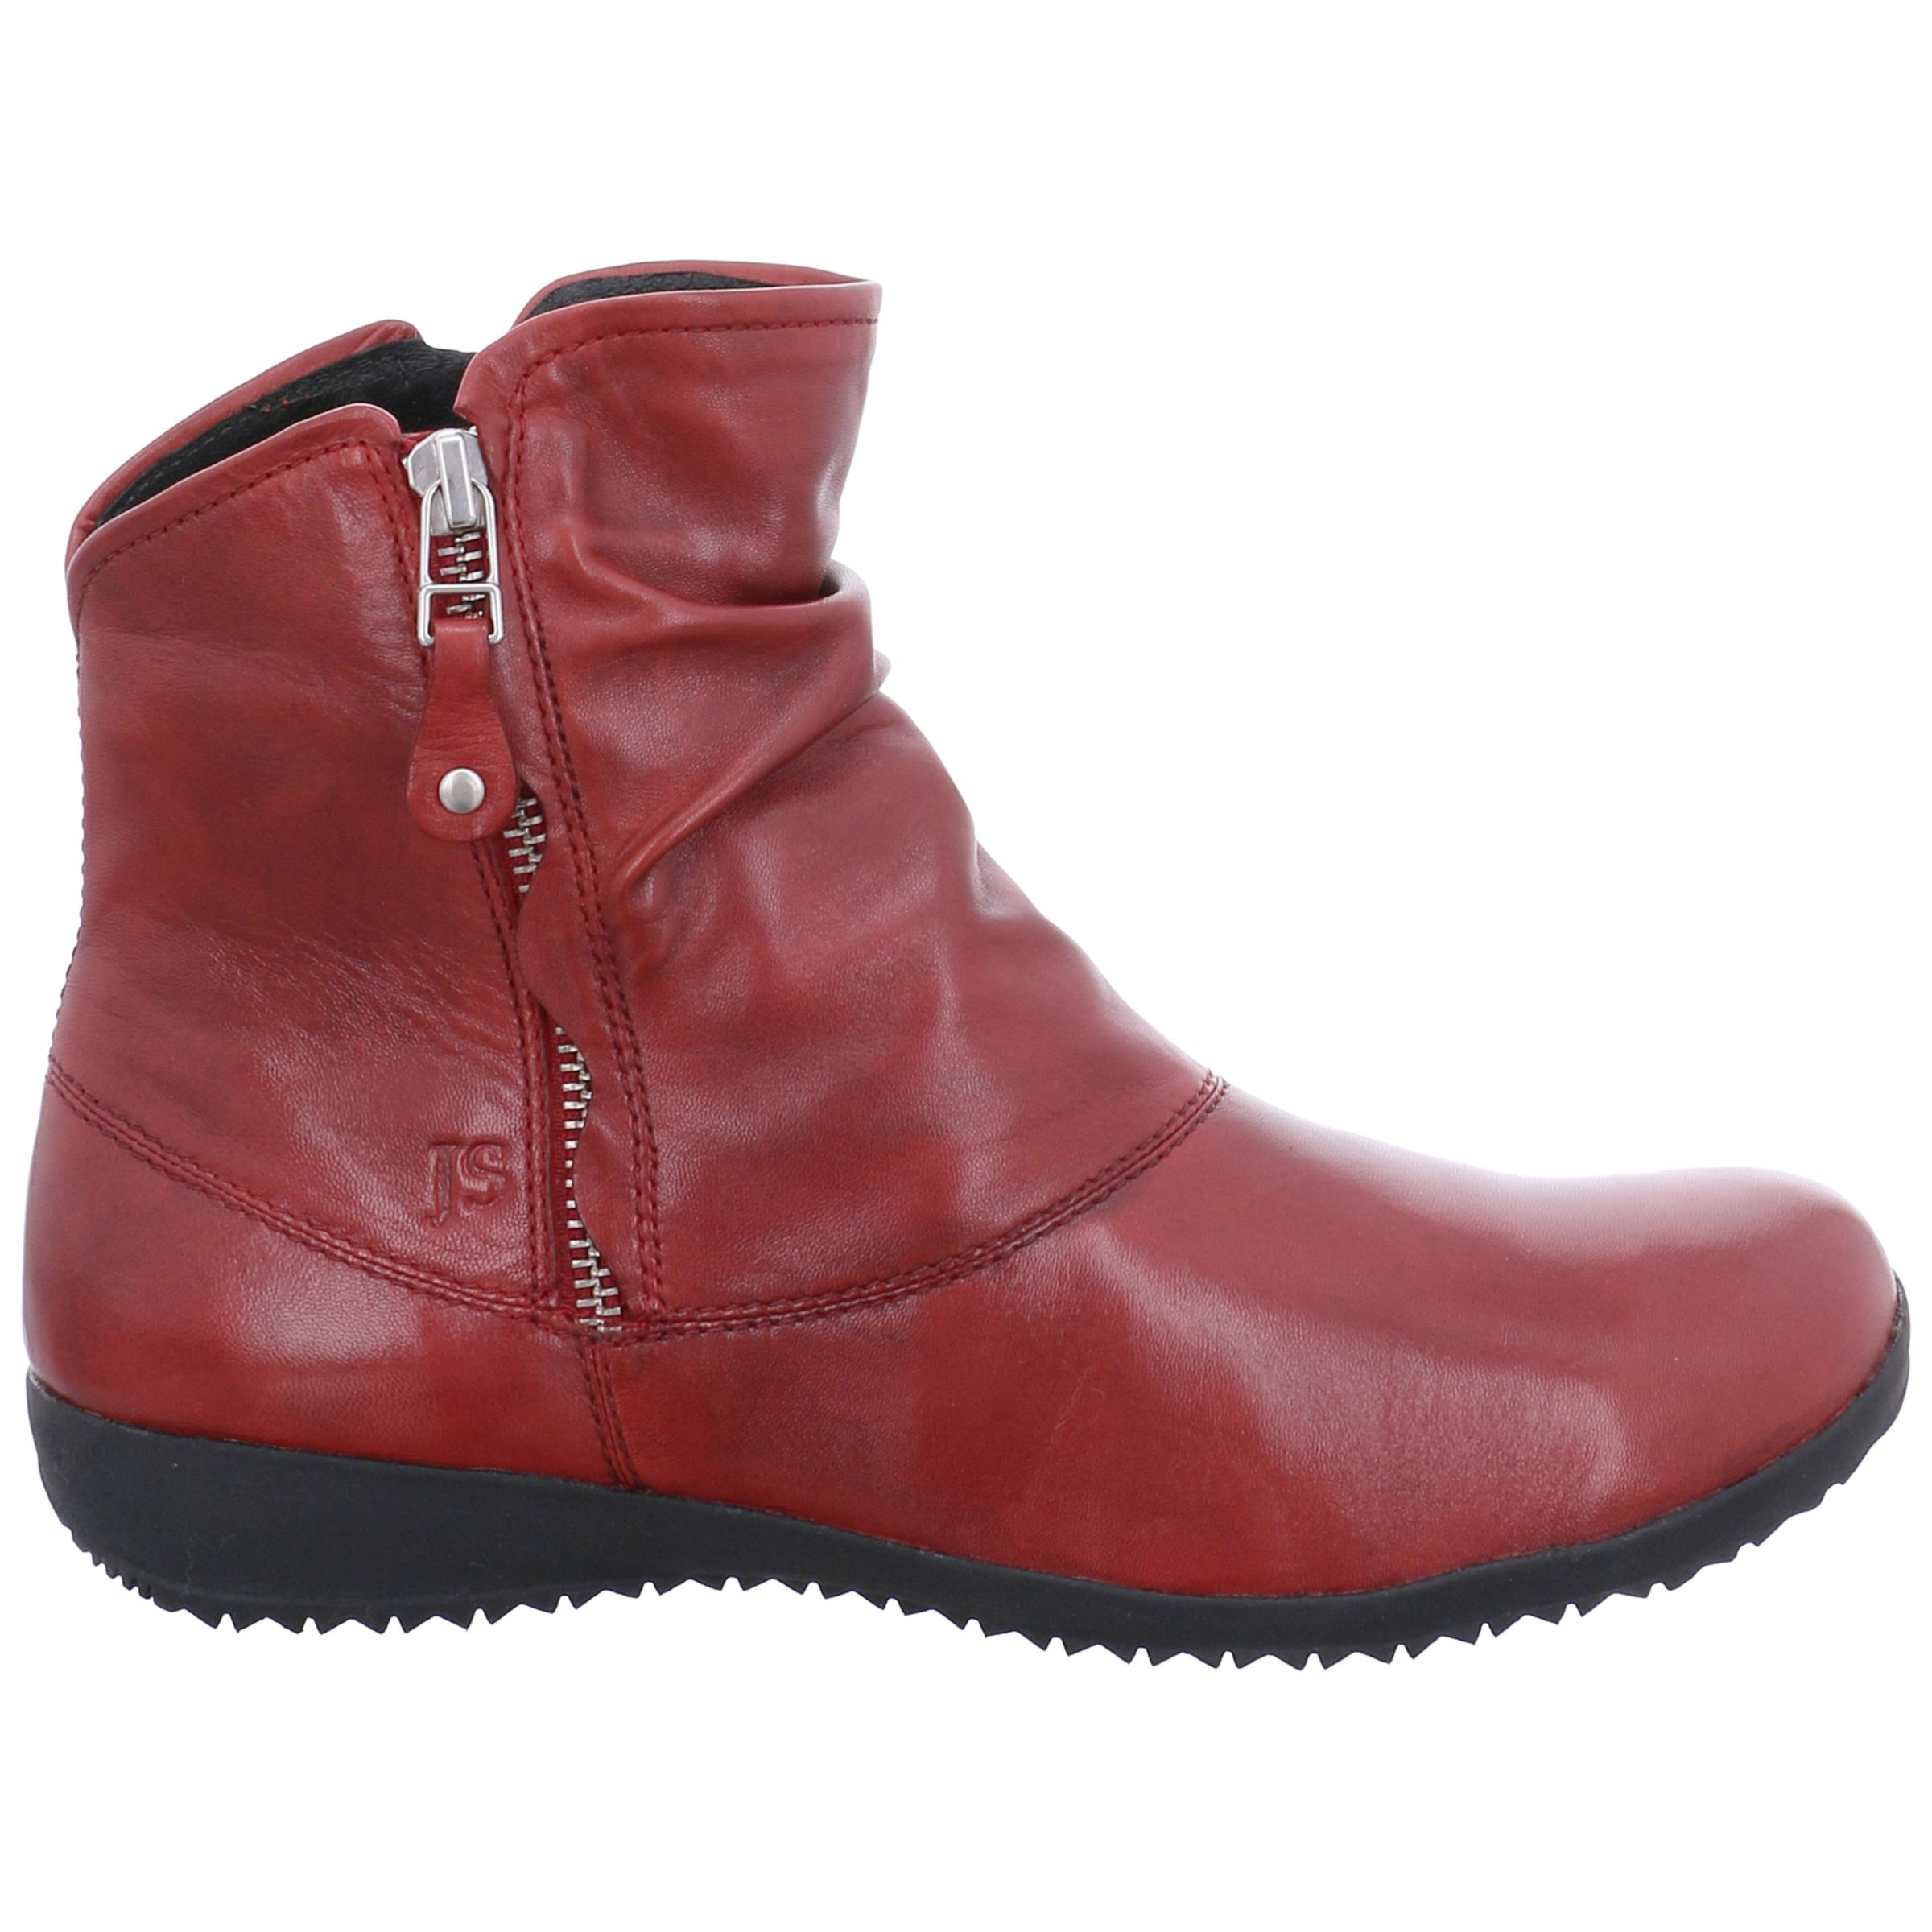 90250a1f Josef Seibel Naly 24 Ankle Boots, Red Leather at John Lewis & Partners